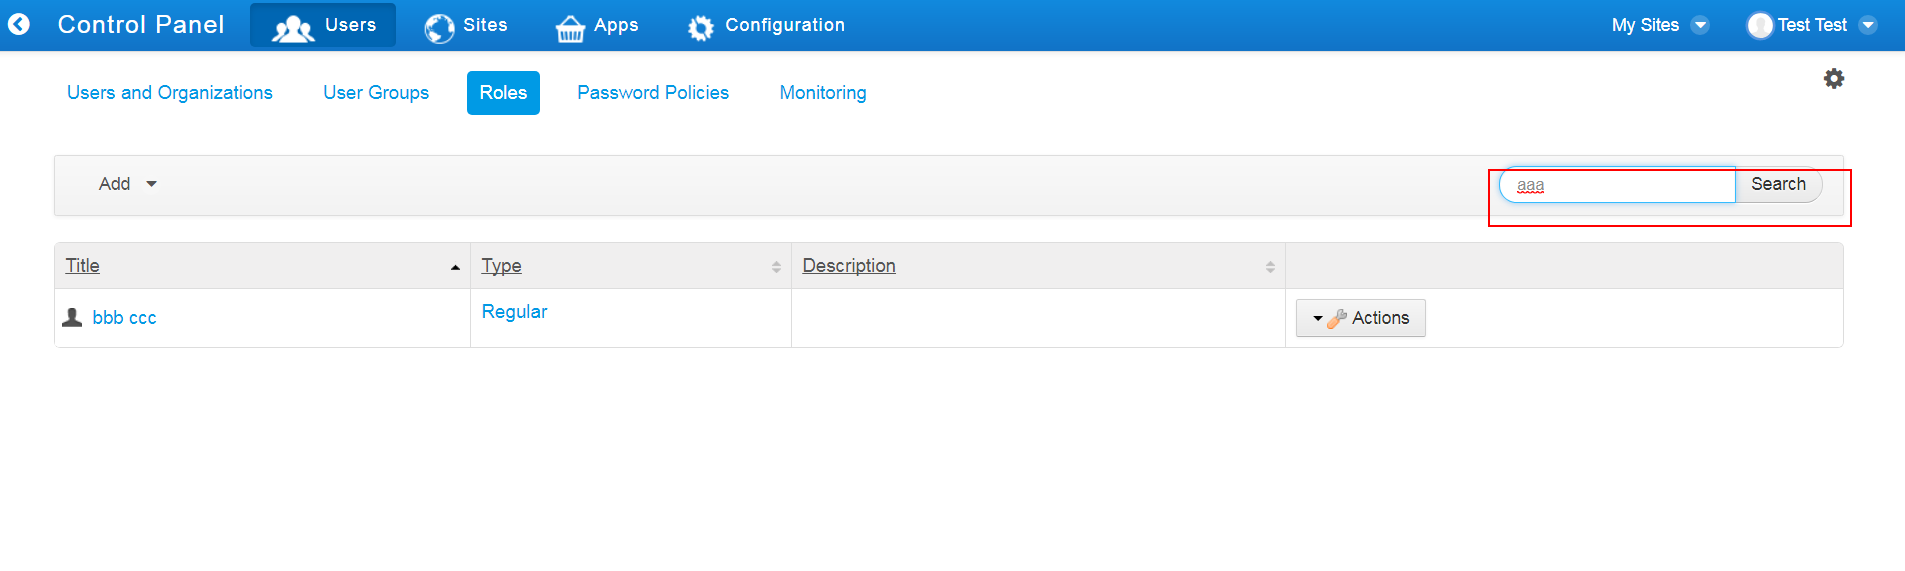 LPS-33454] Cannot search roles by title - Liferay Issues